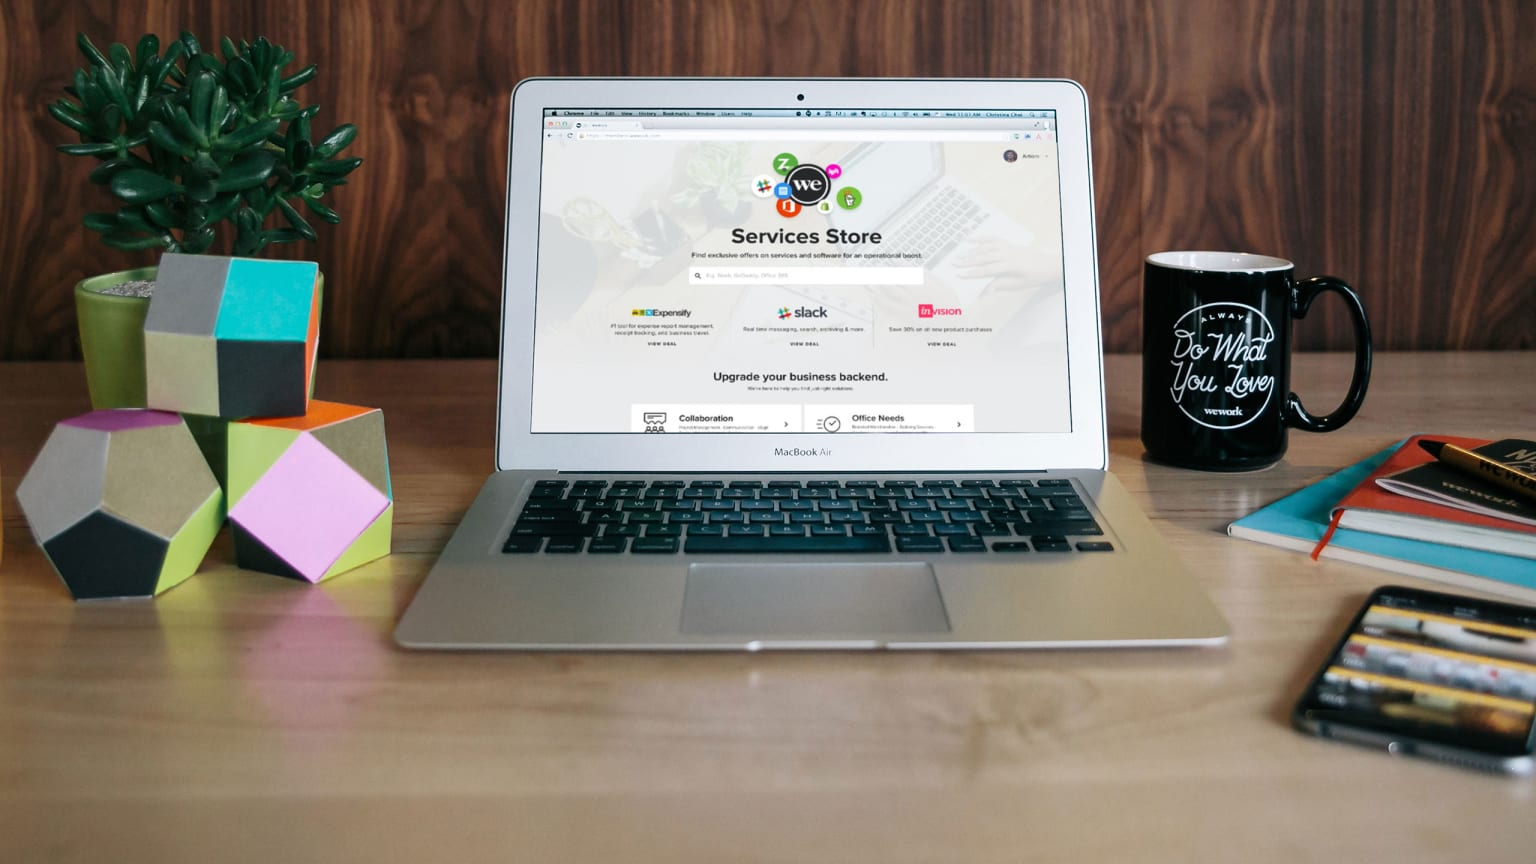 Launched WeWork Services Store